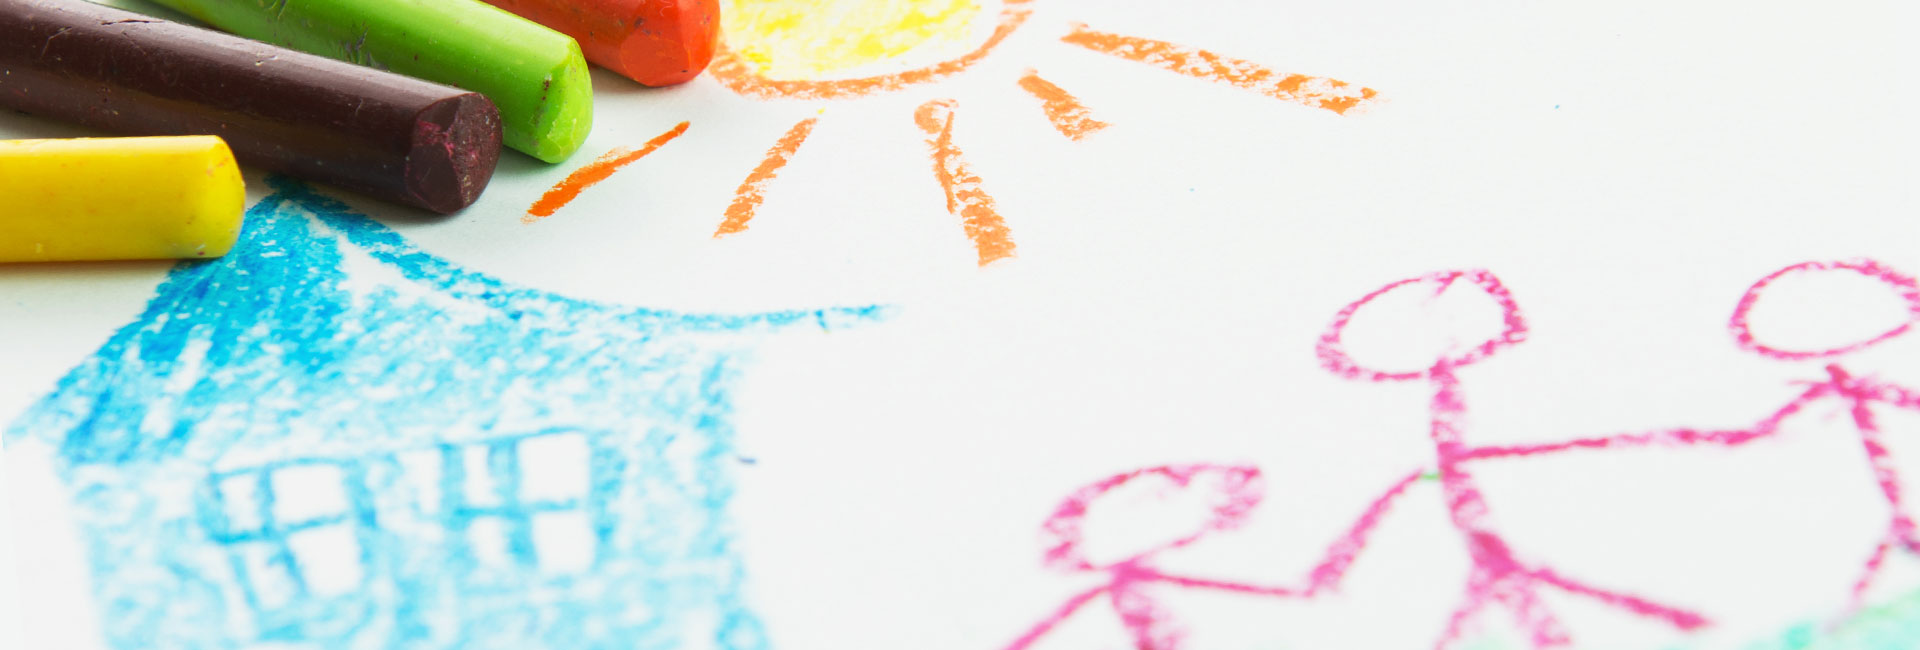 Child's crayon drawing showing sun, house and family